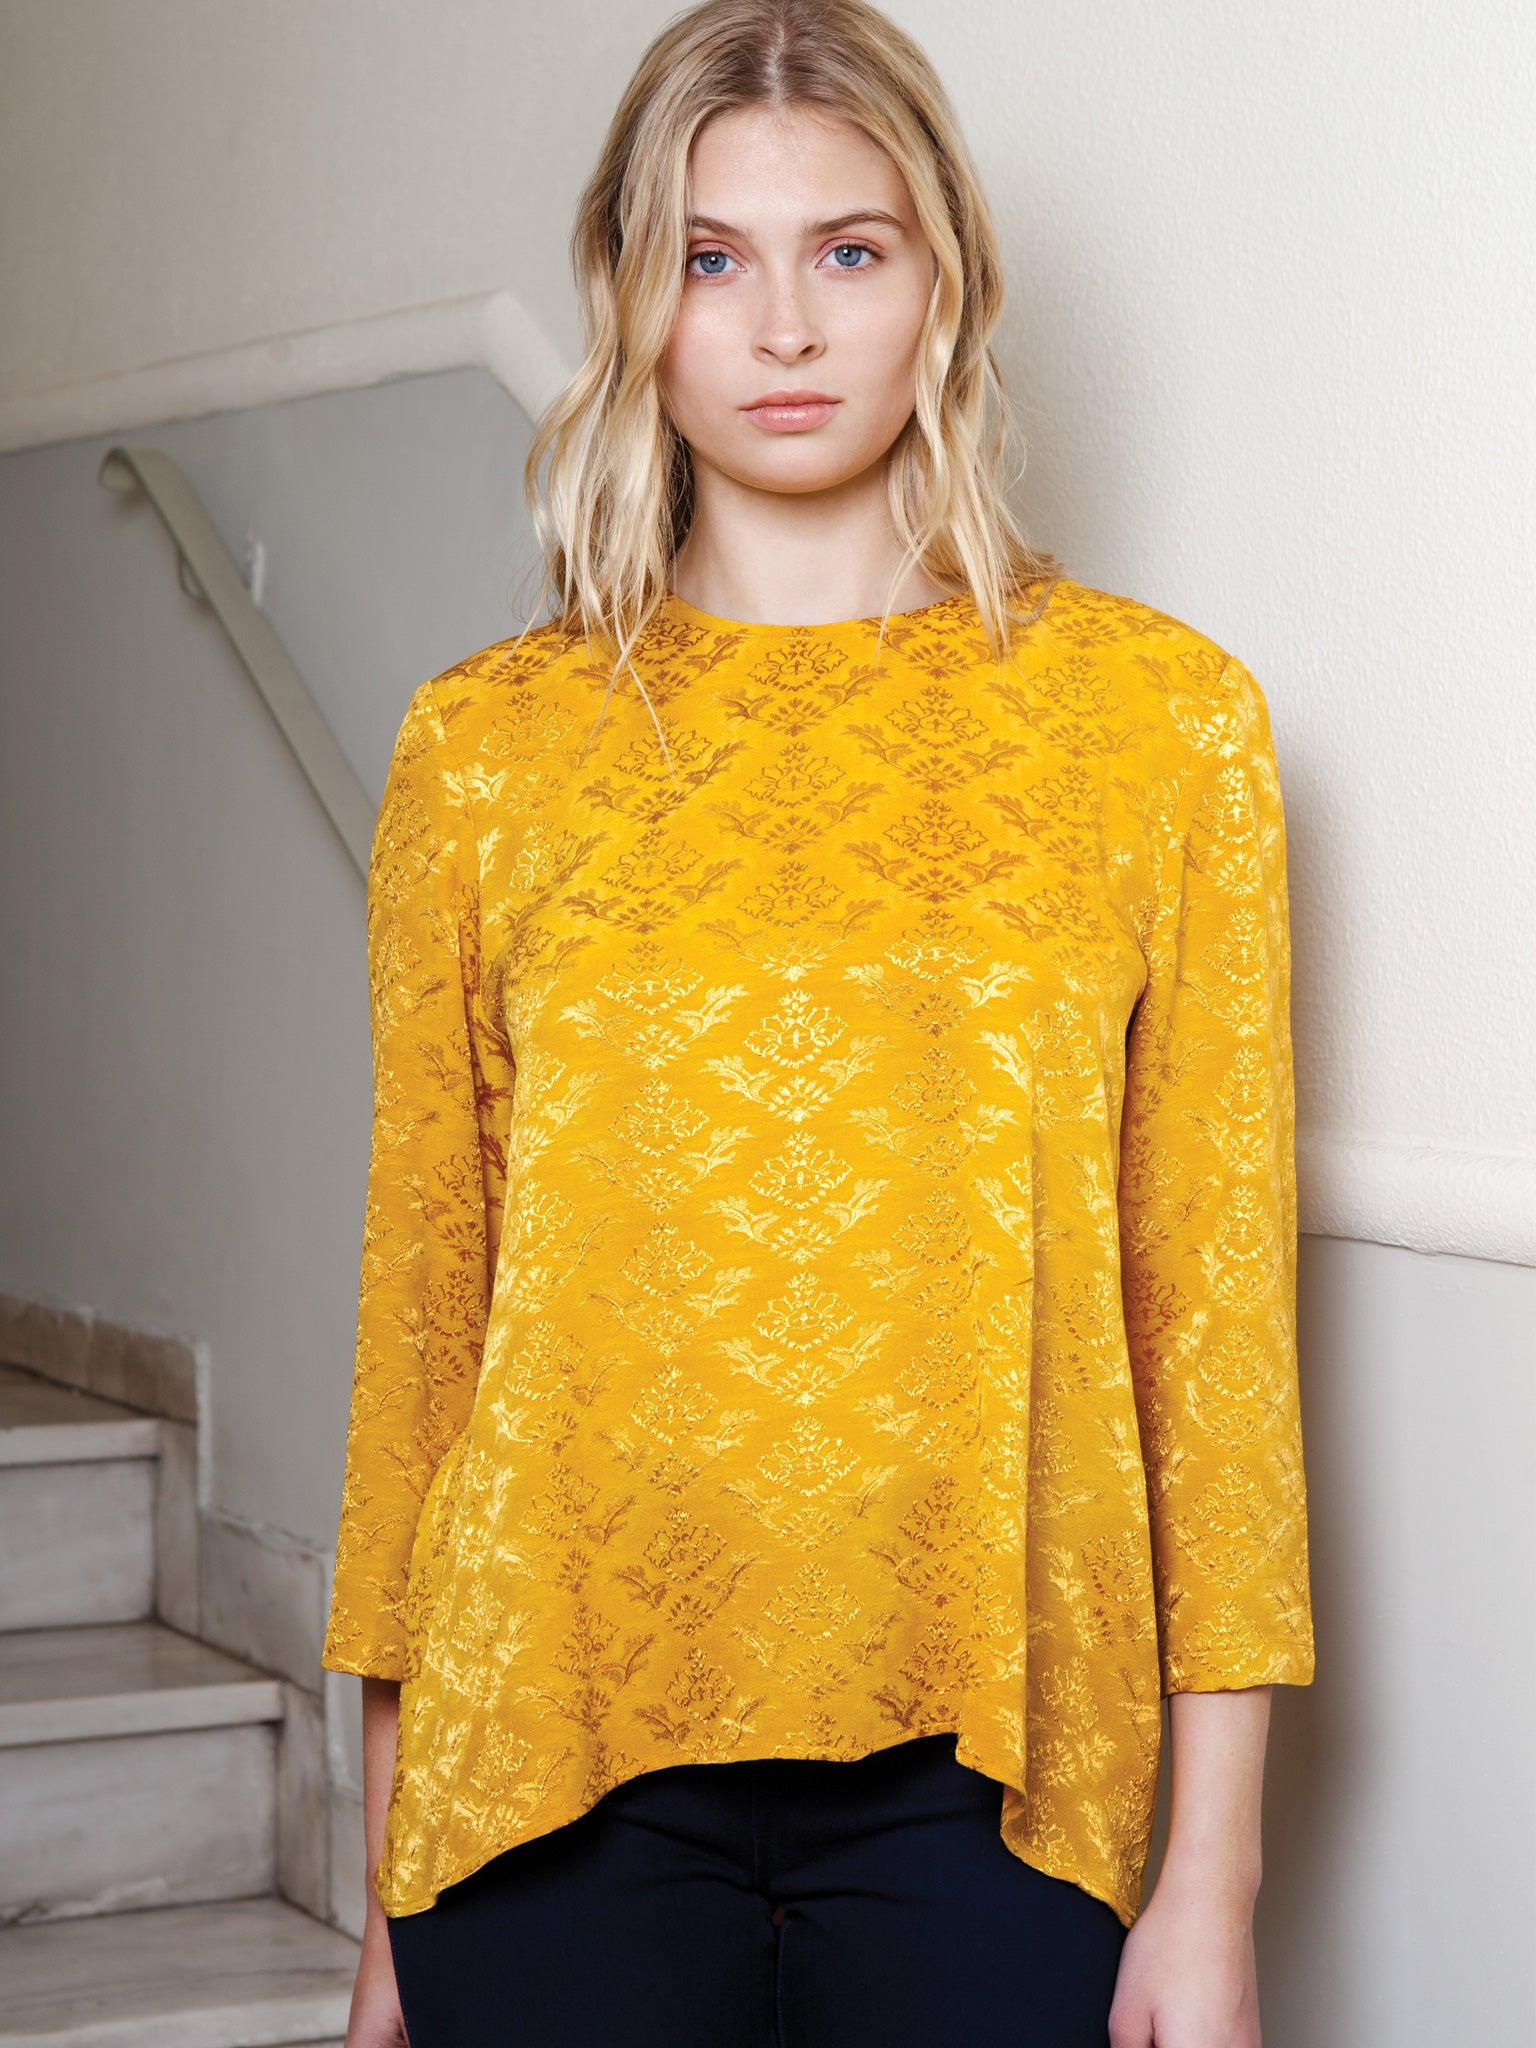 Always A Girl At Heart Mustard Blouse